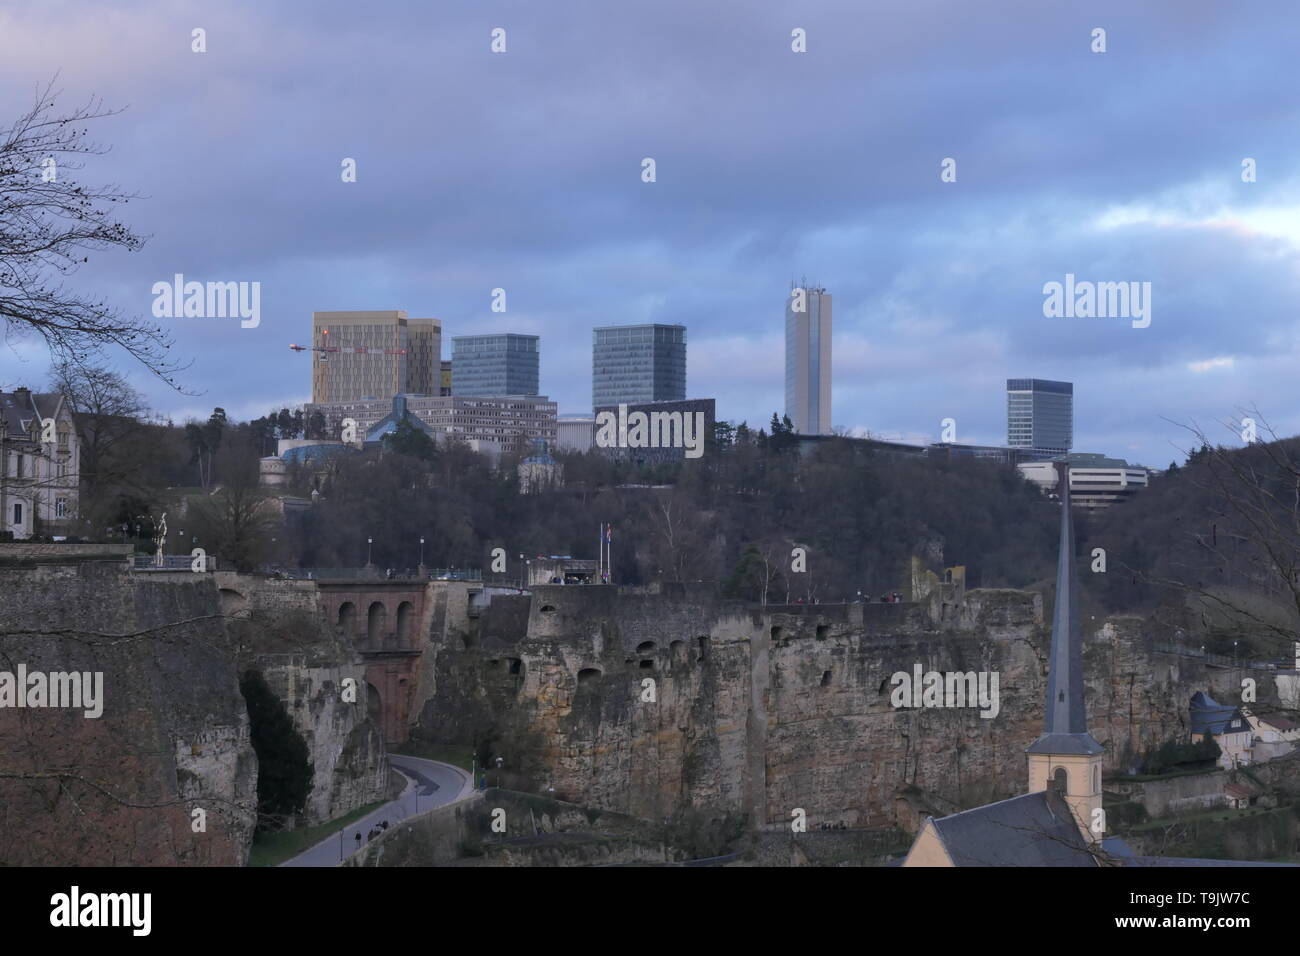 Contrast between the old part and the new part of the city of Luxembourg - Stock Image